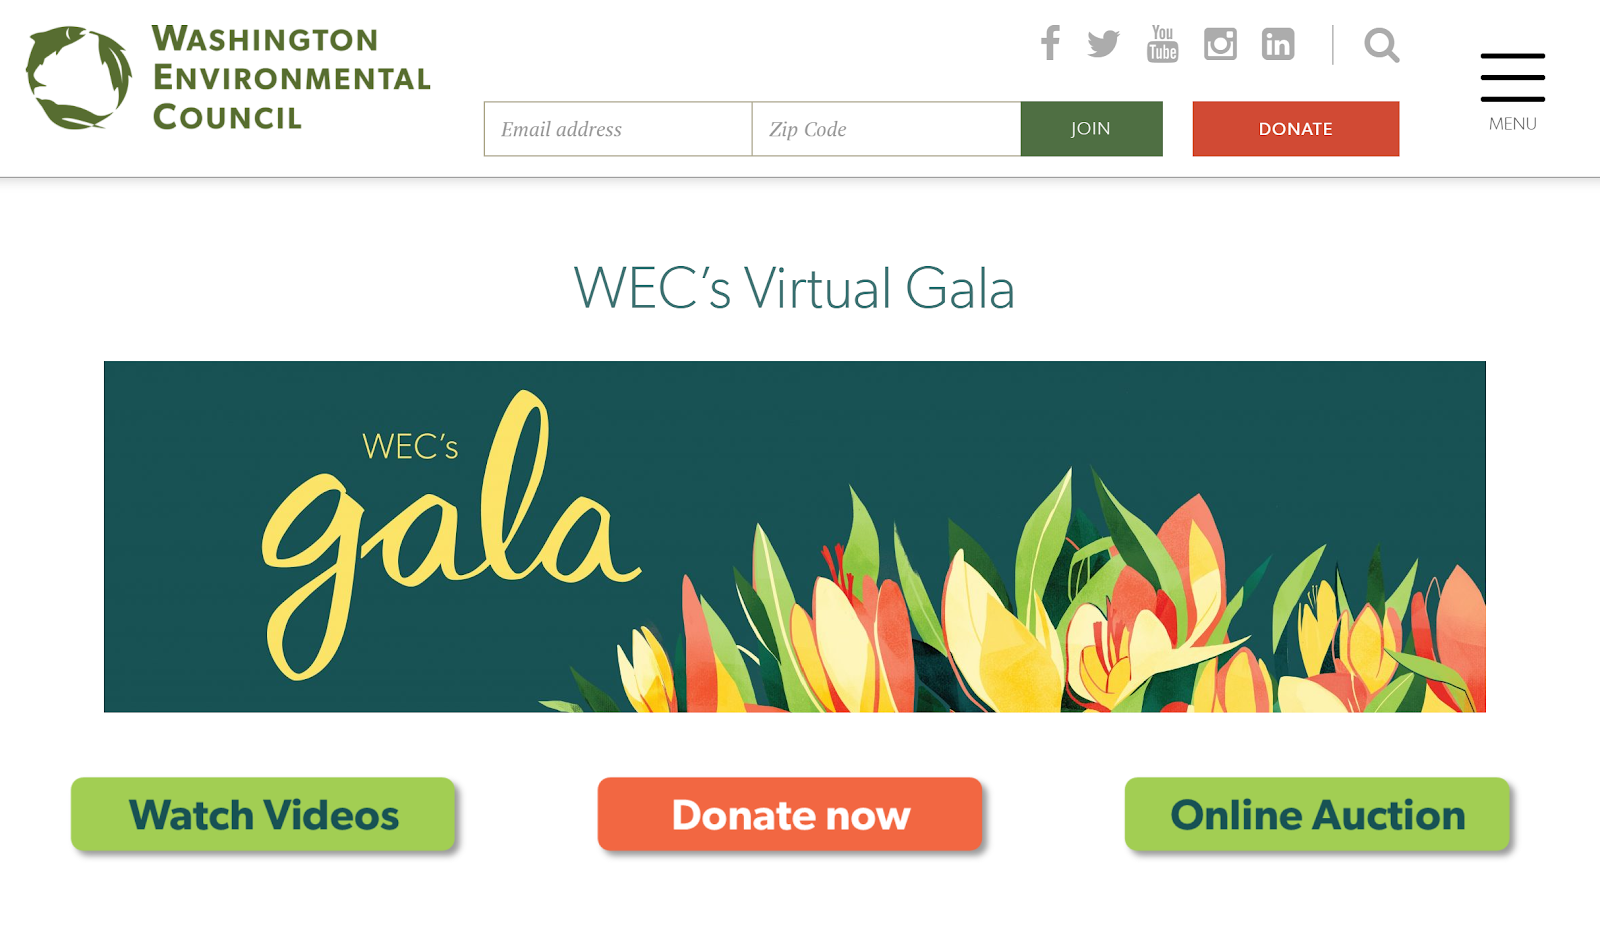 Washington Environmental Council Virtual Gala landing page